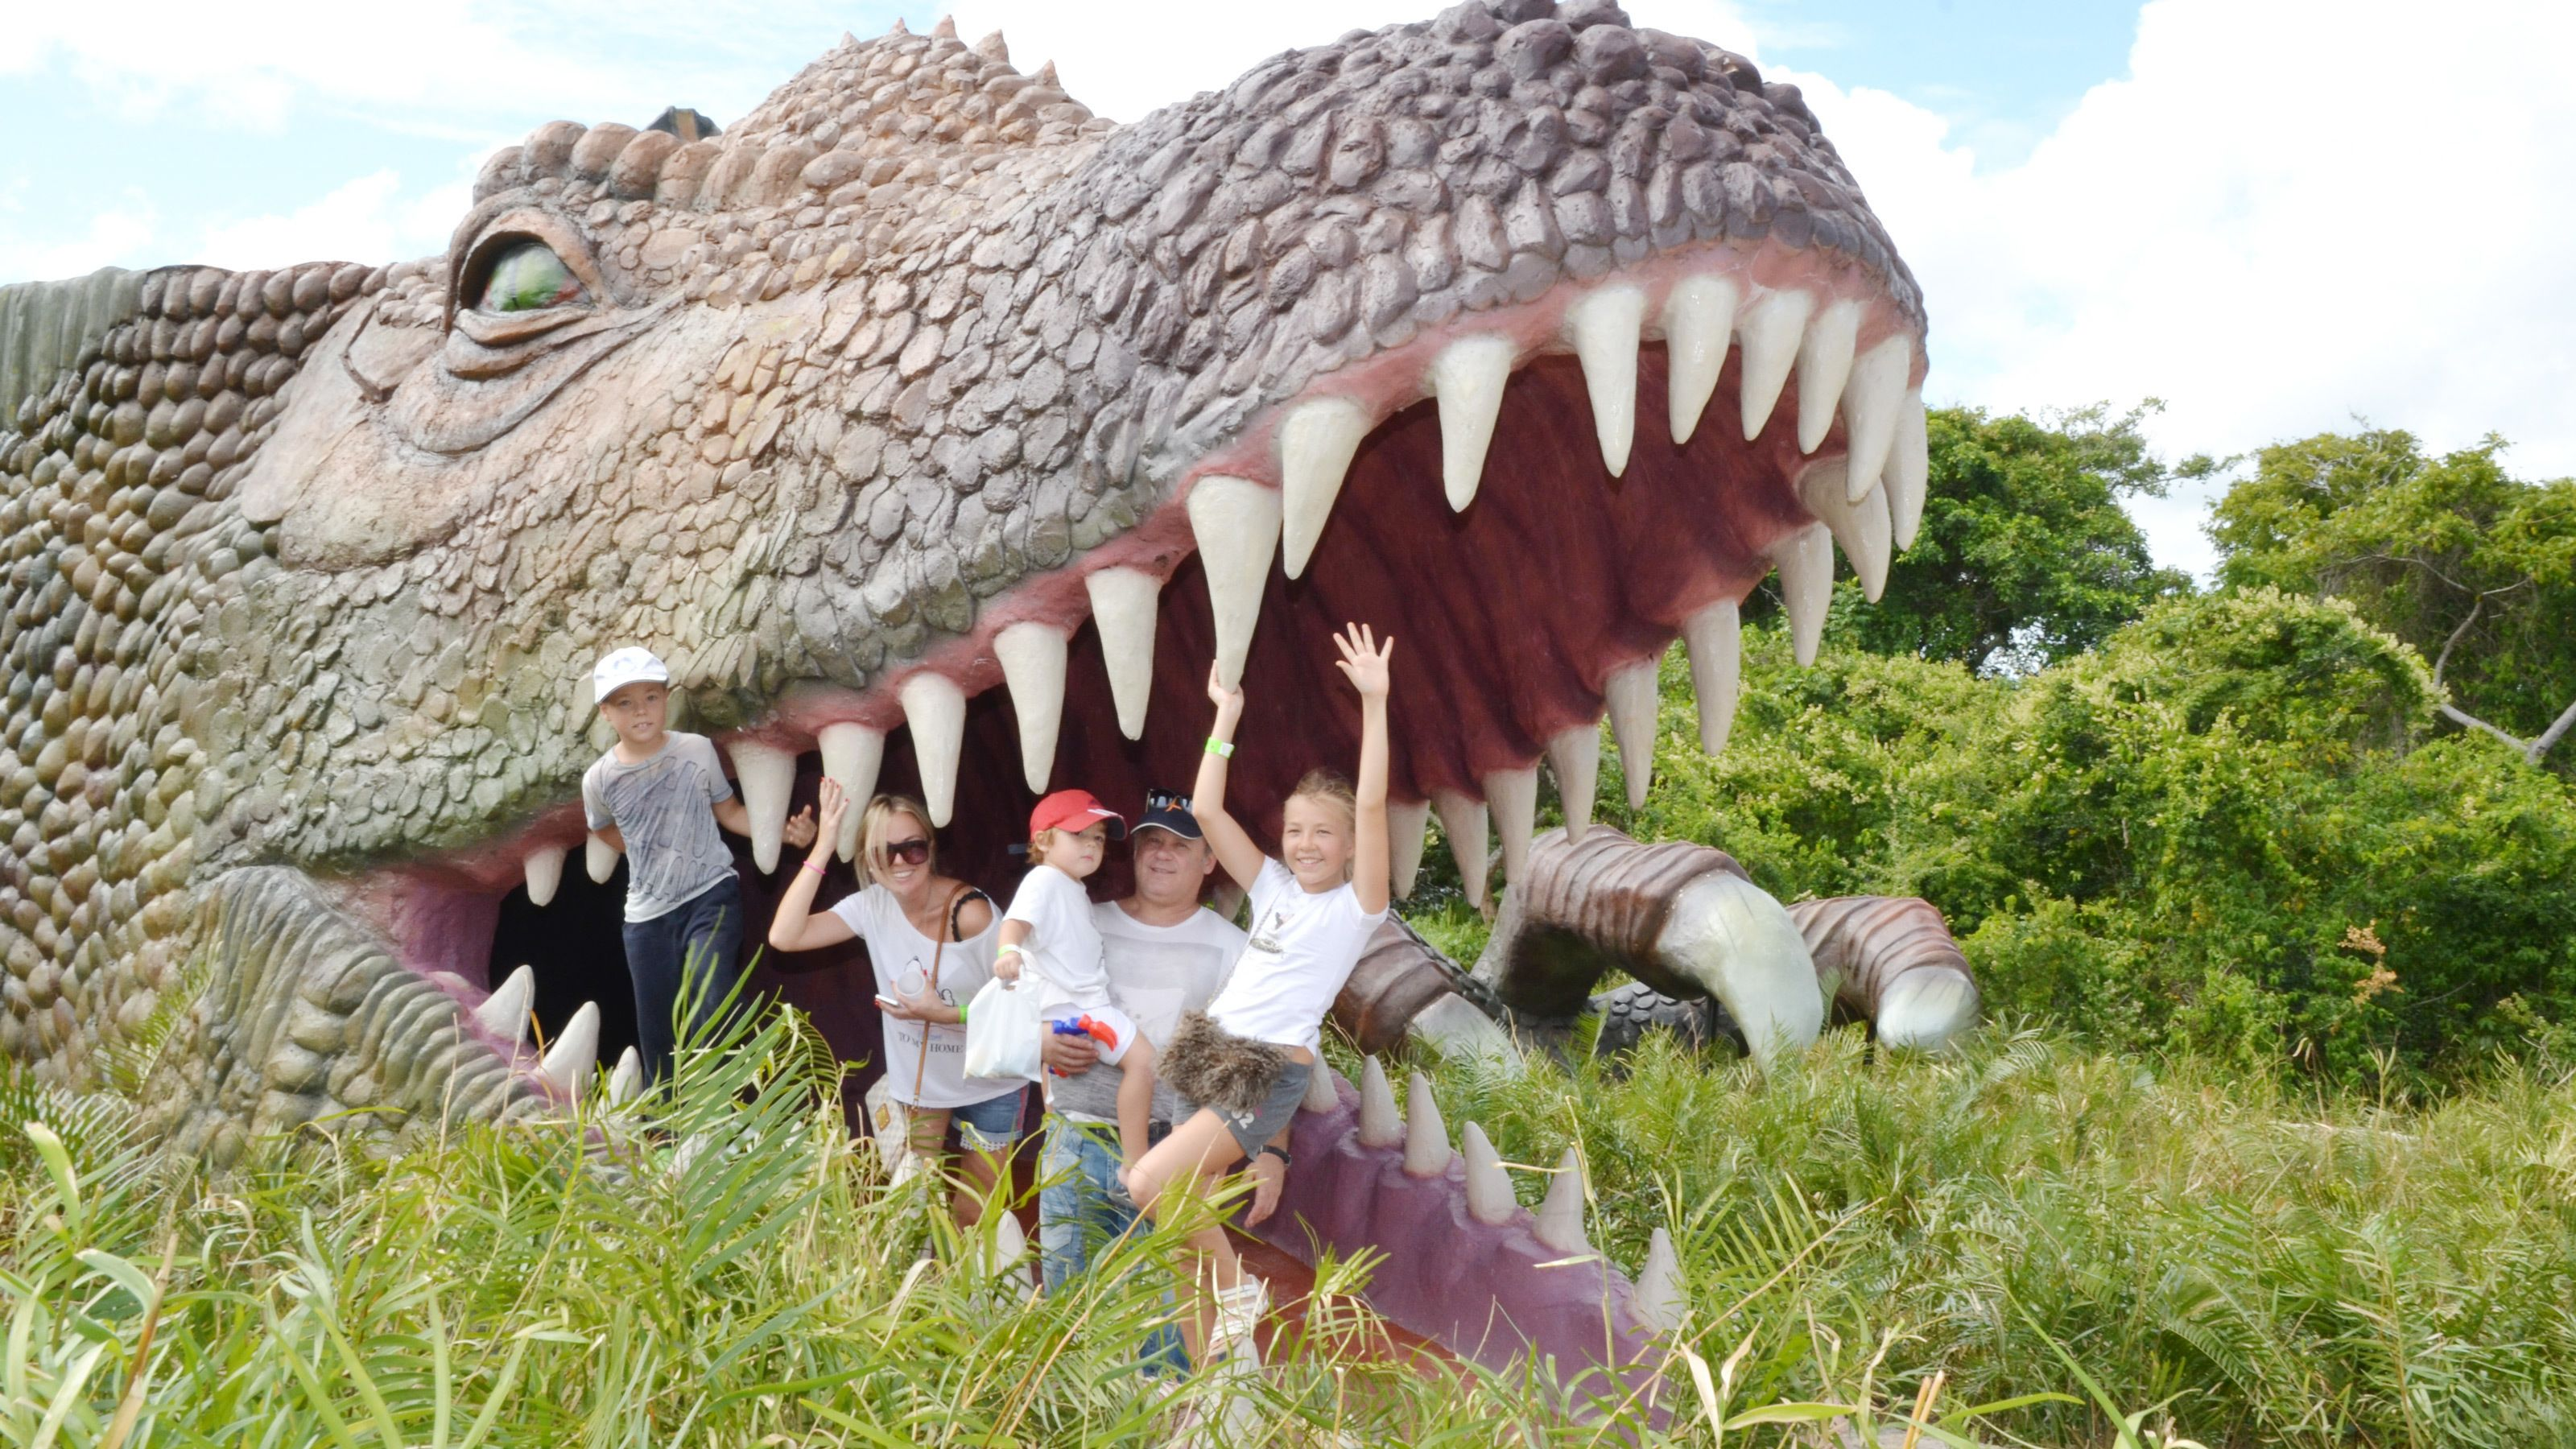 children playing in mouth of dinosaur in Santo Domingo